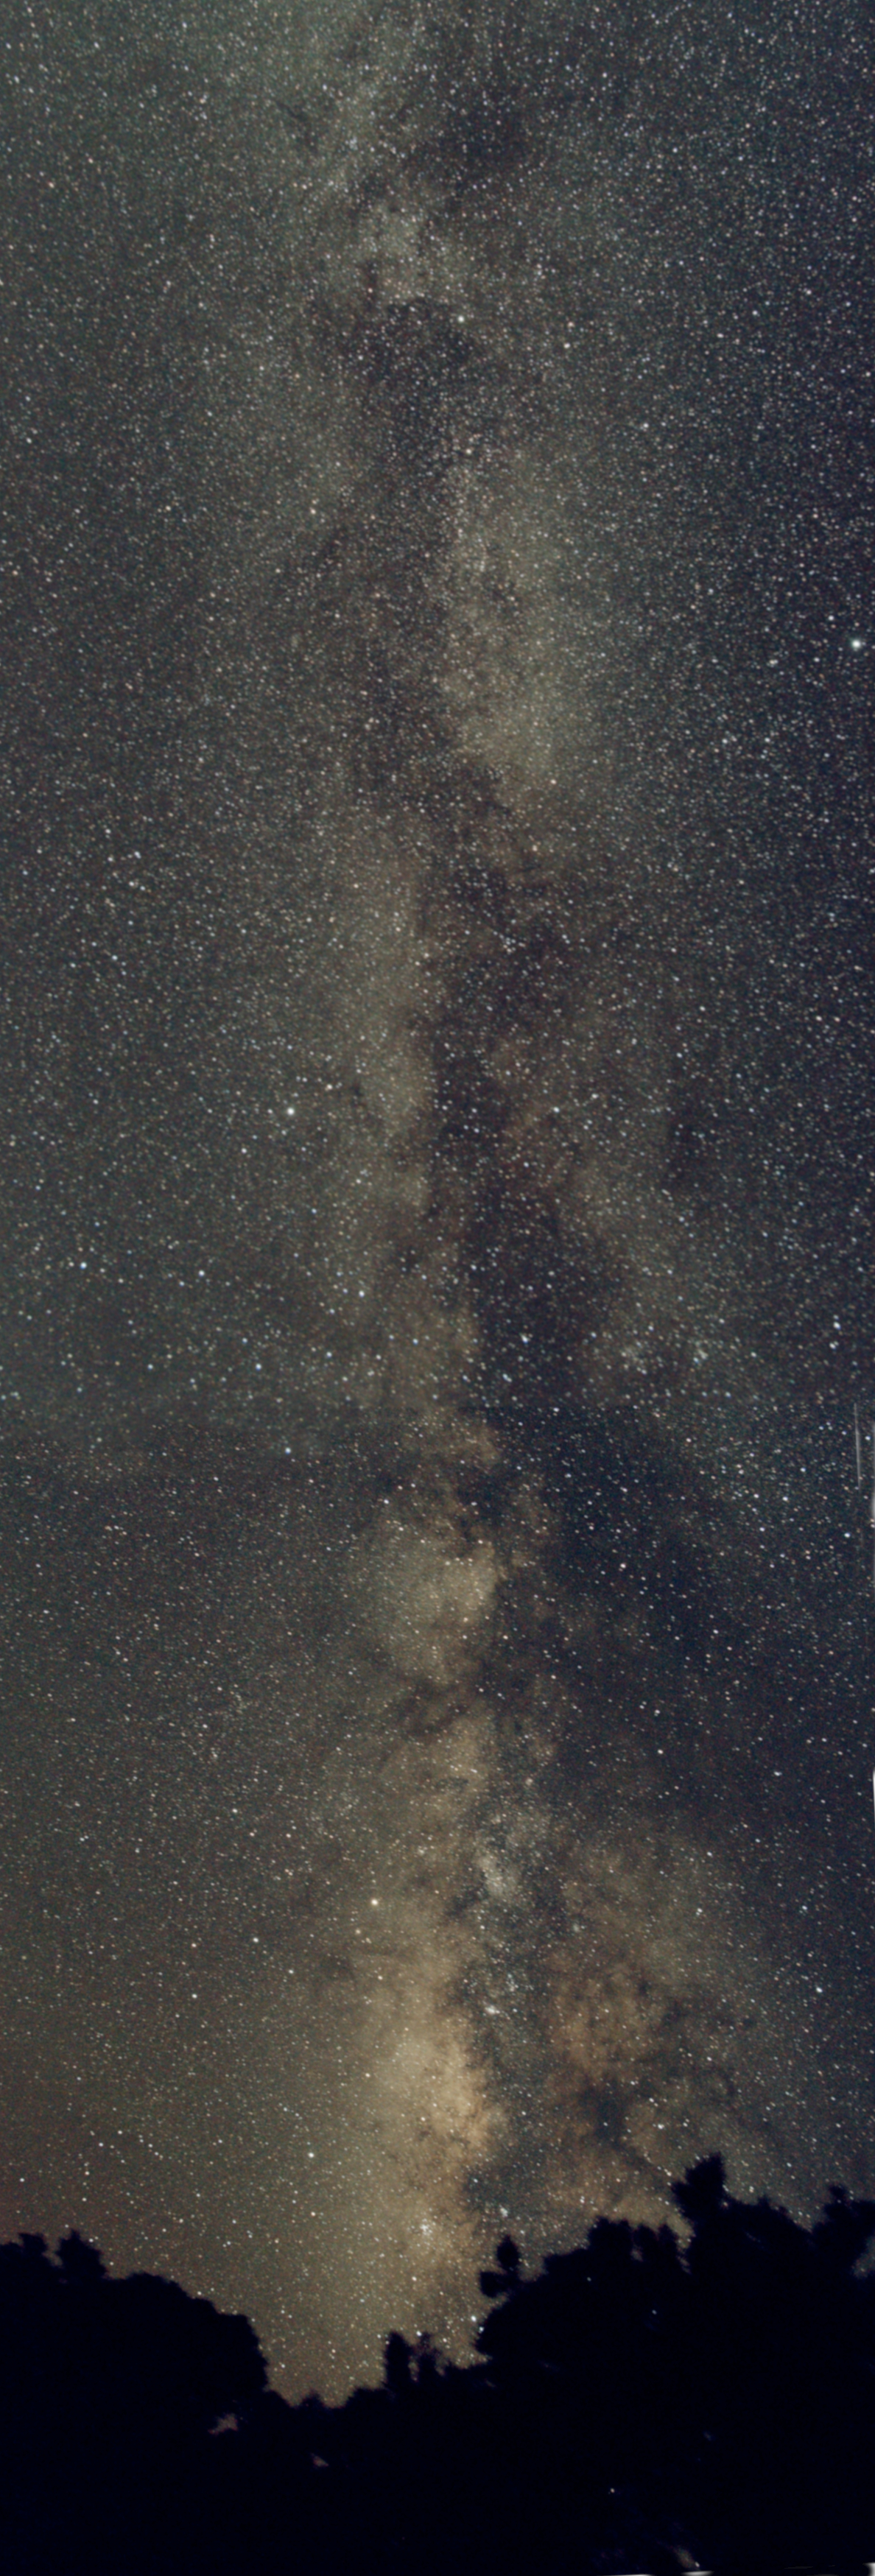 milkyway-merged-in-gimp-4cfc8c642e3f18cdcd0ccc159d8282f61fc192a2